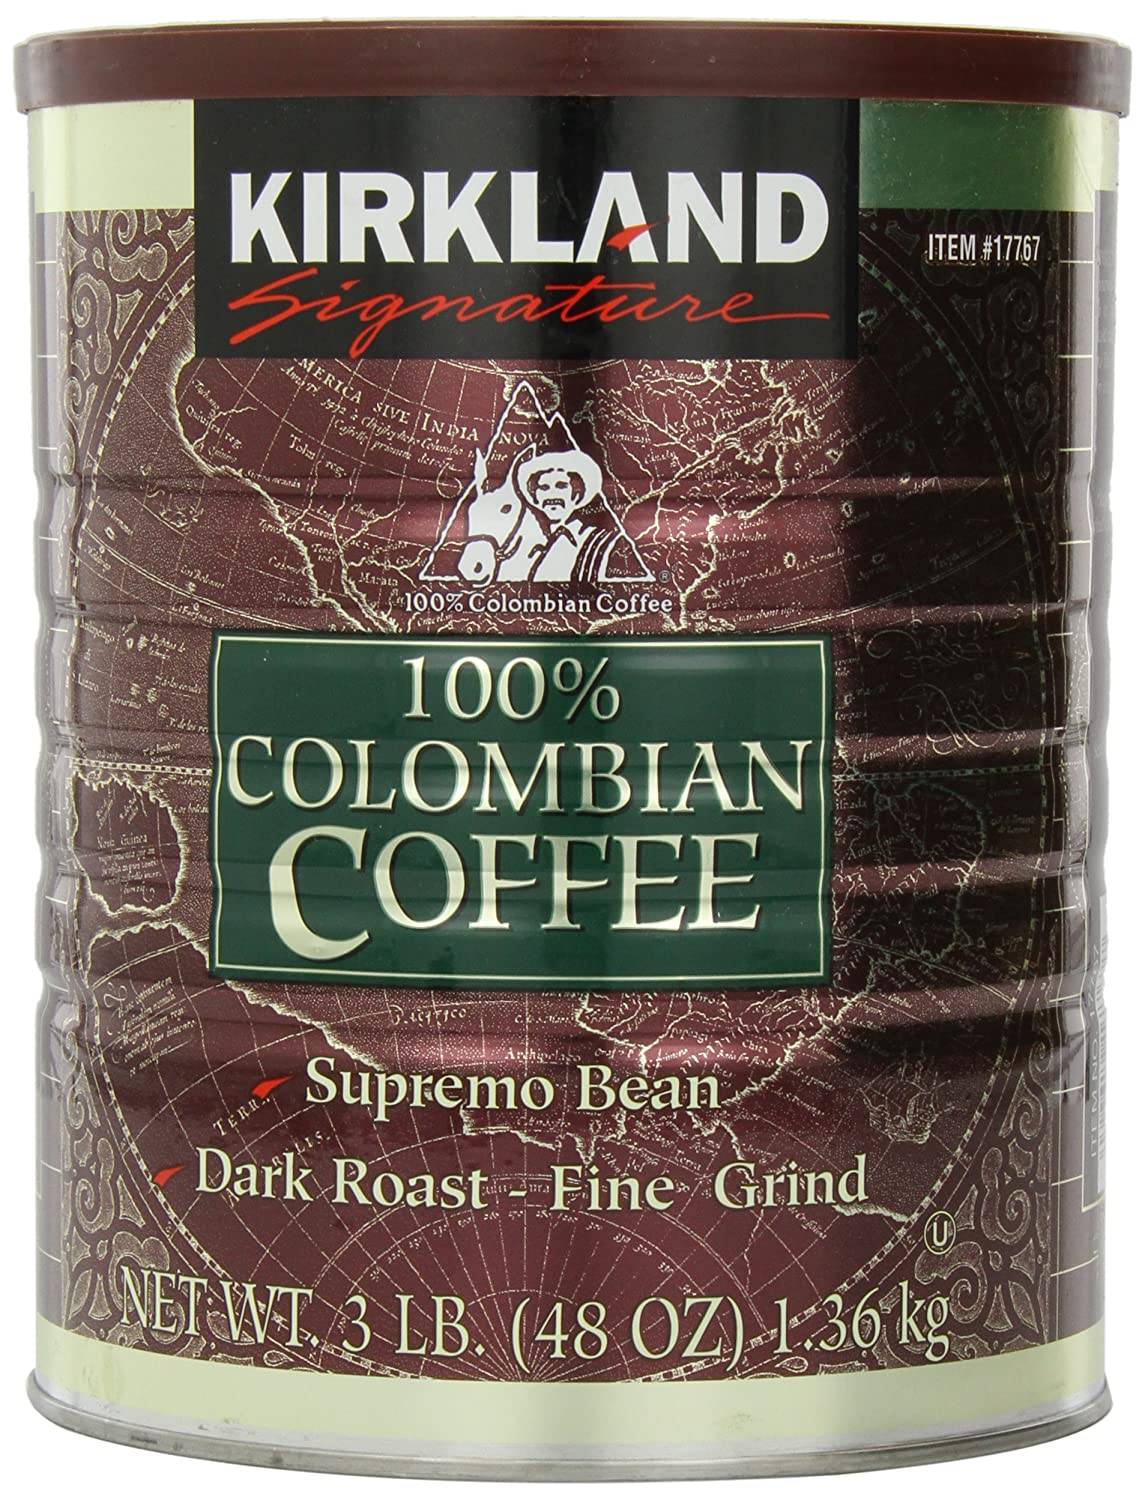 Signature 100% Colombian Coffee Supremo Bean